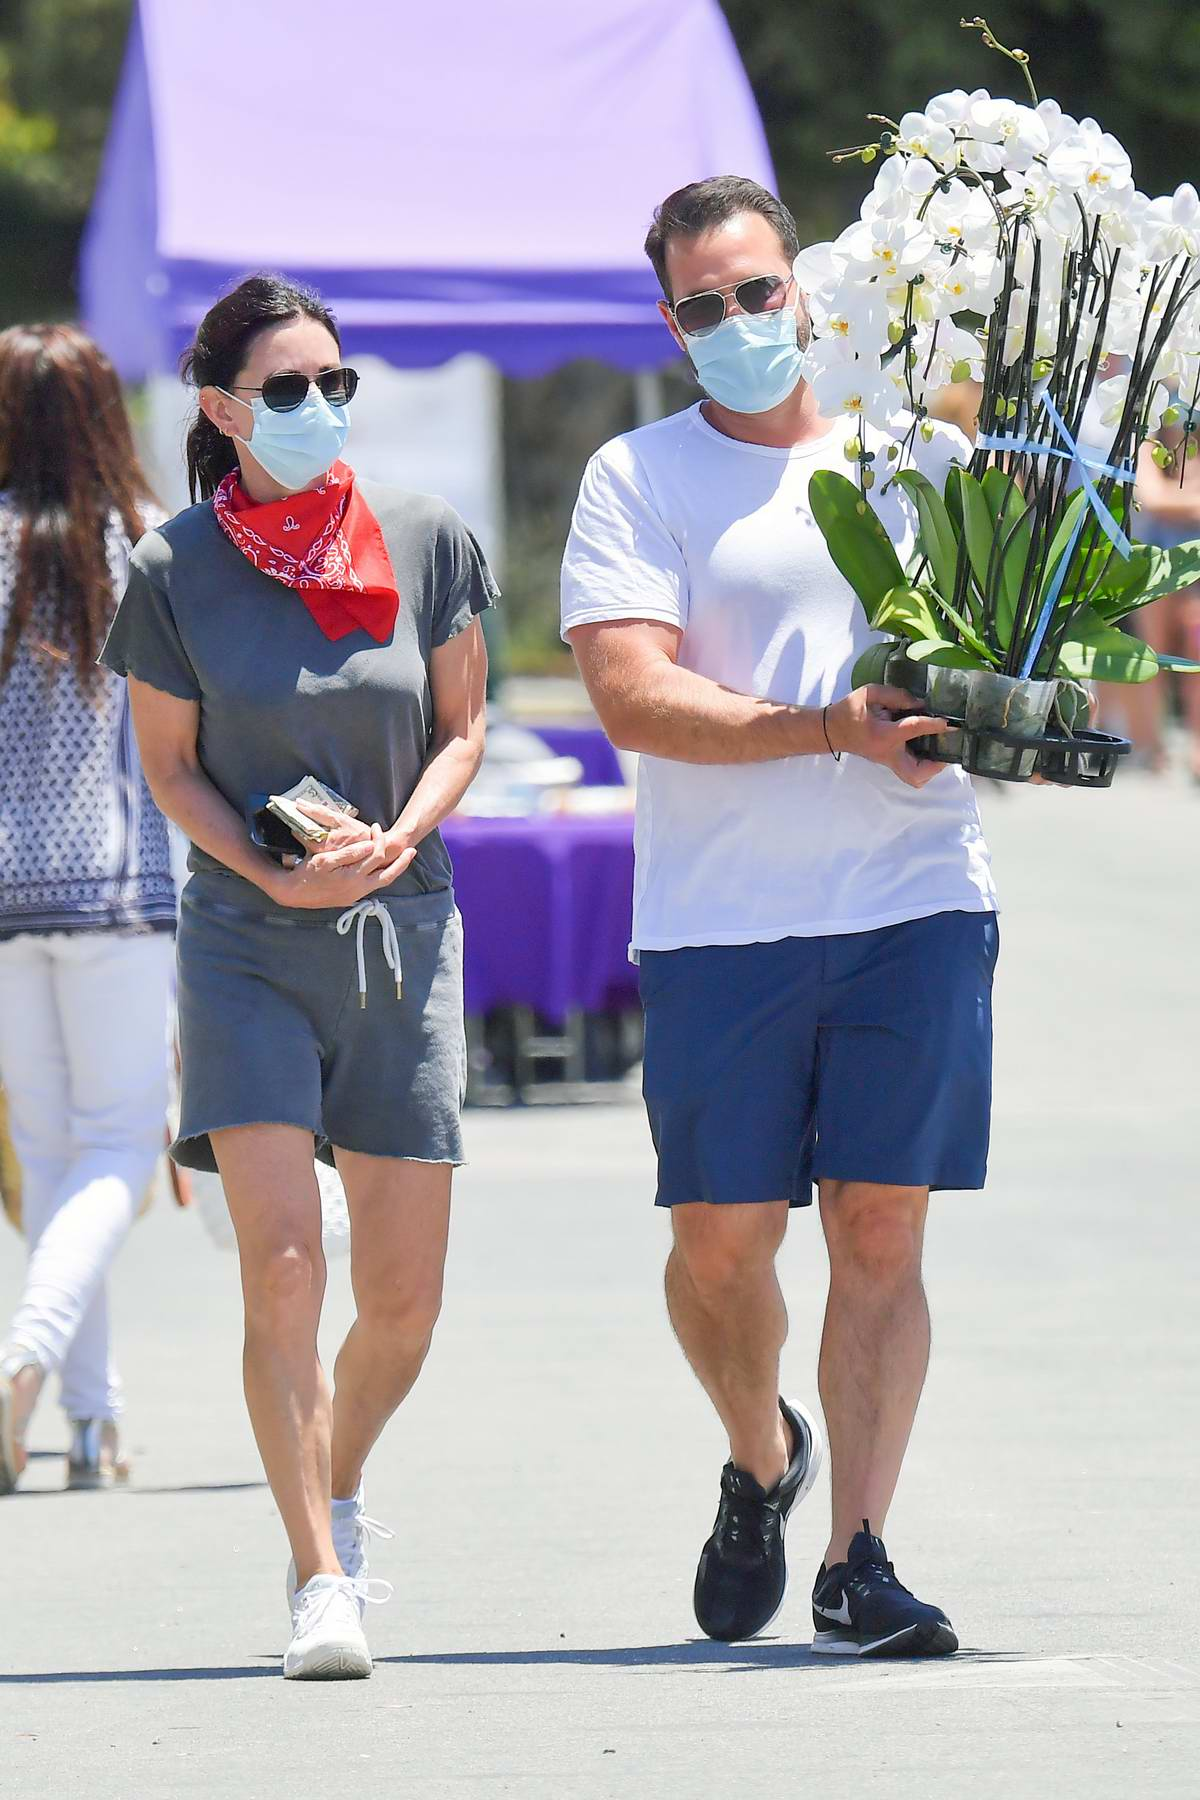 Courteney Cox and boyfriend Johnny McDaid stops to buy some flowers at a local Farmer's Market in Malibu, California